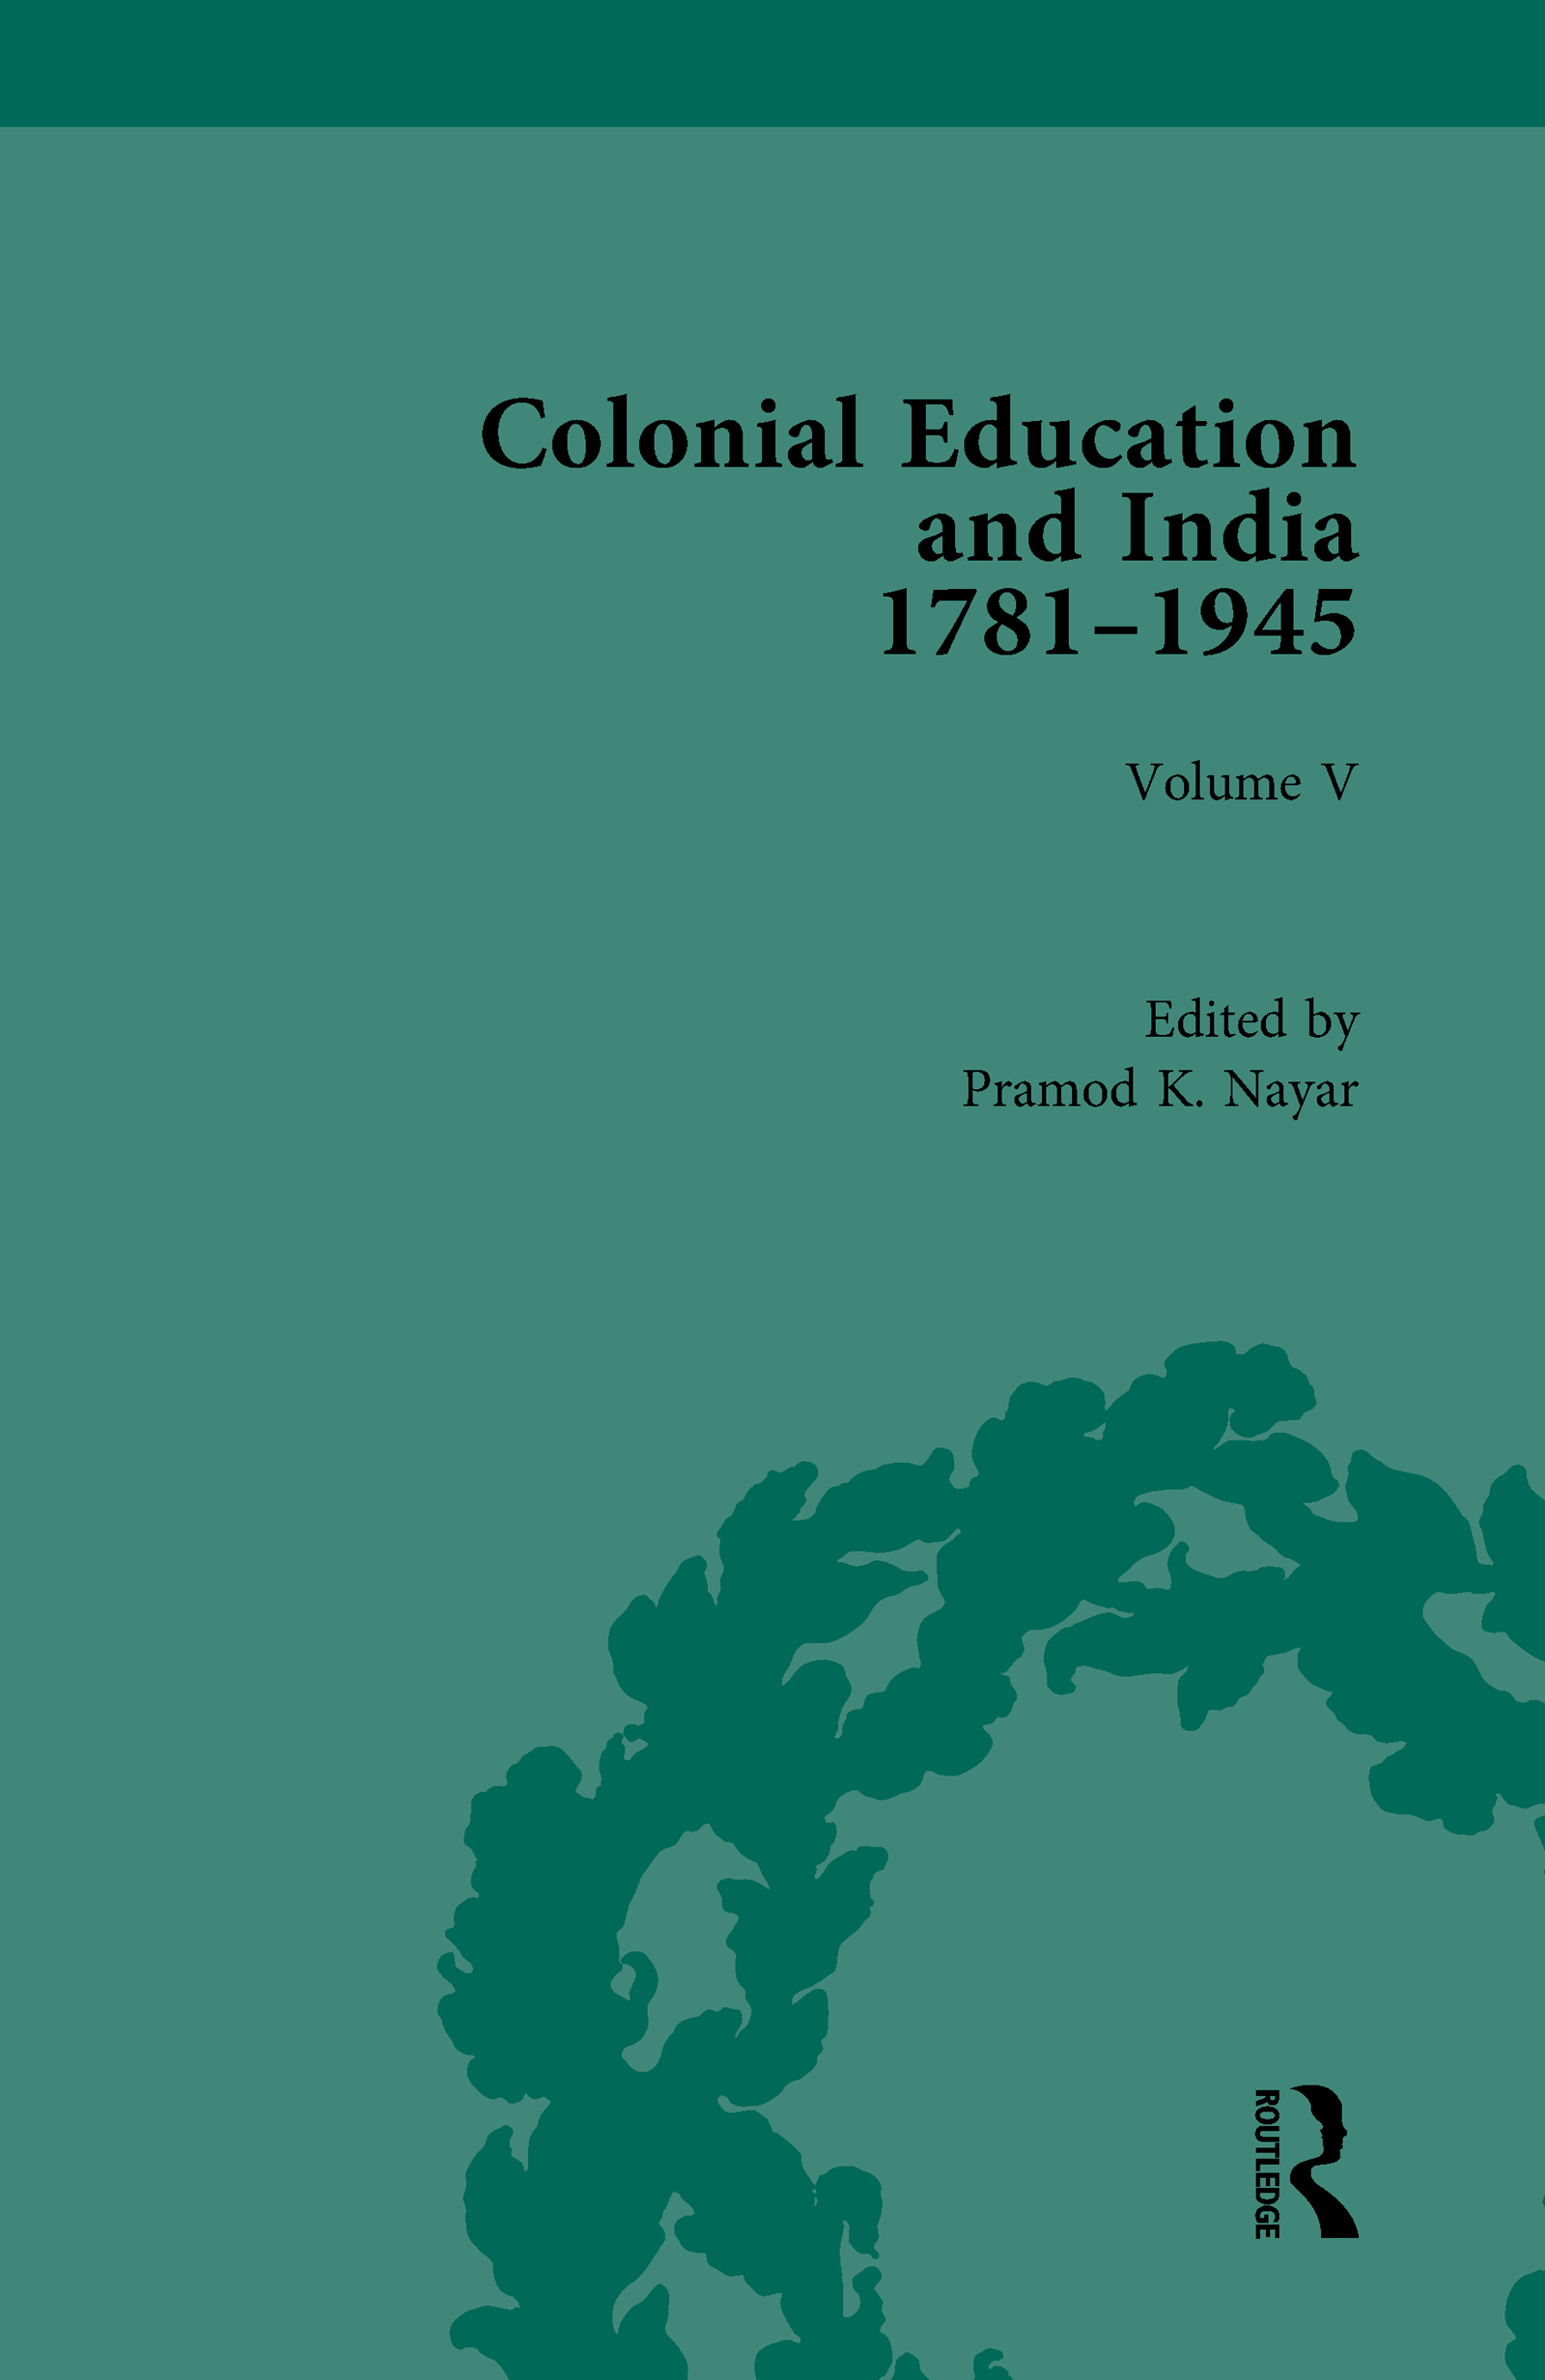 Colonial Education and India 1781-1945: Volume V book cover